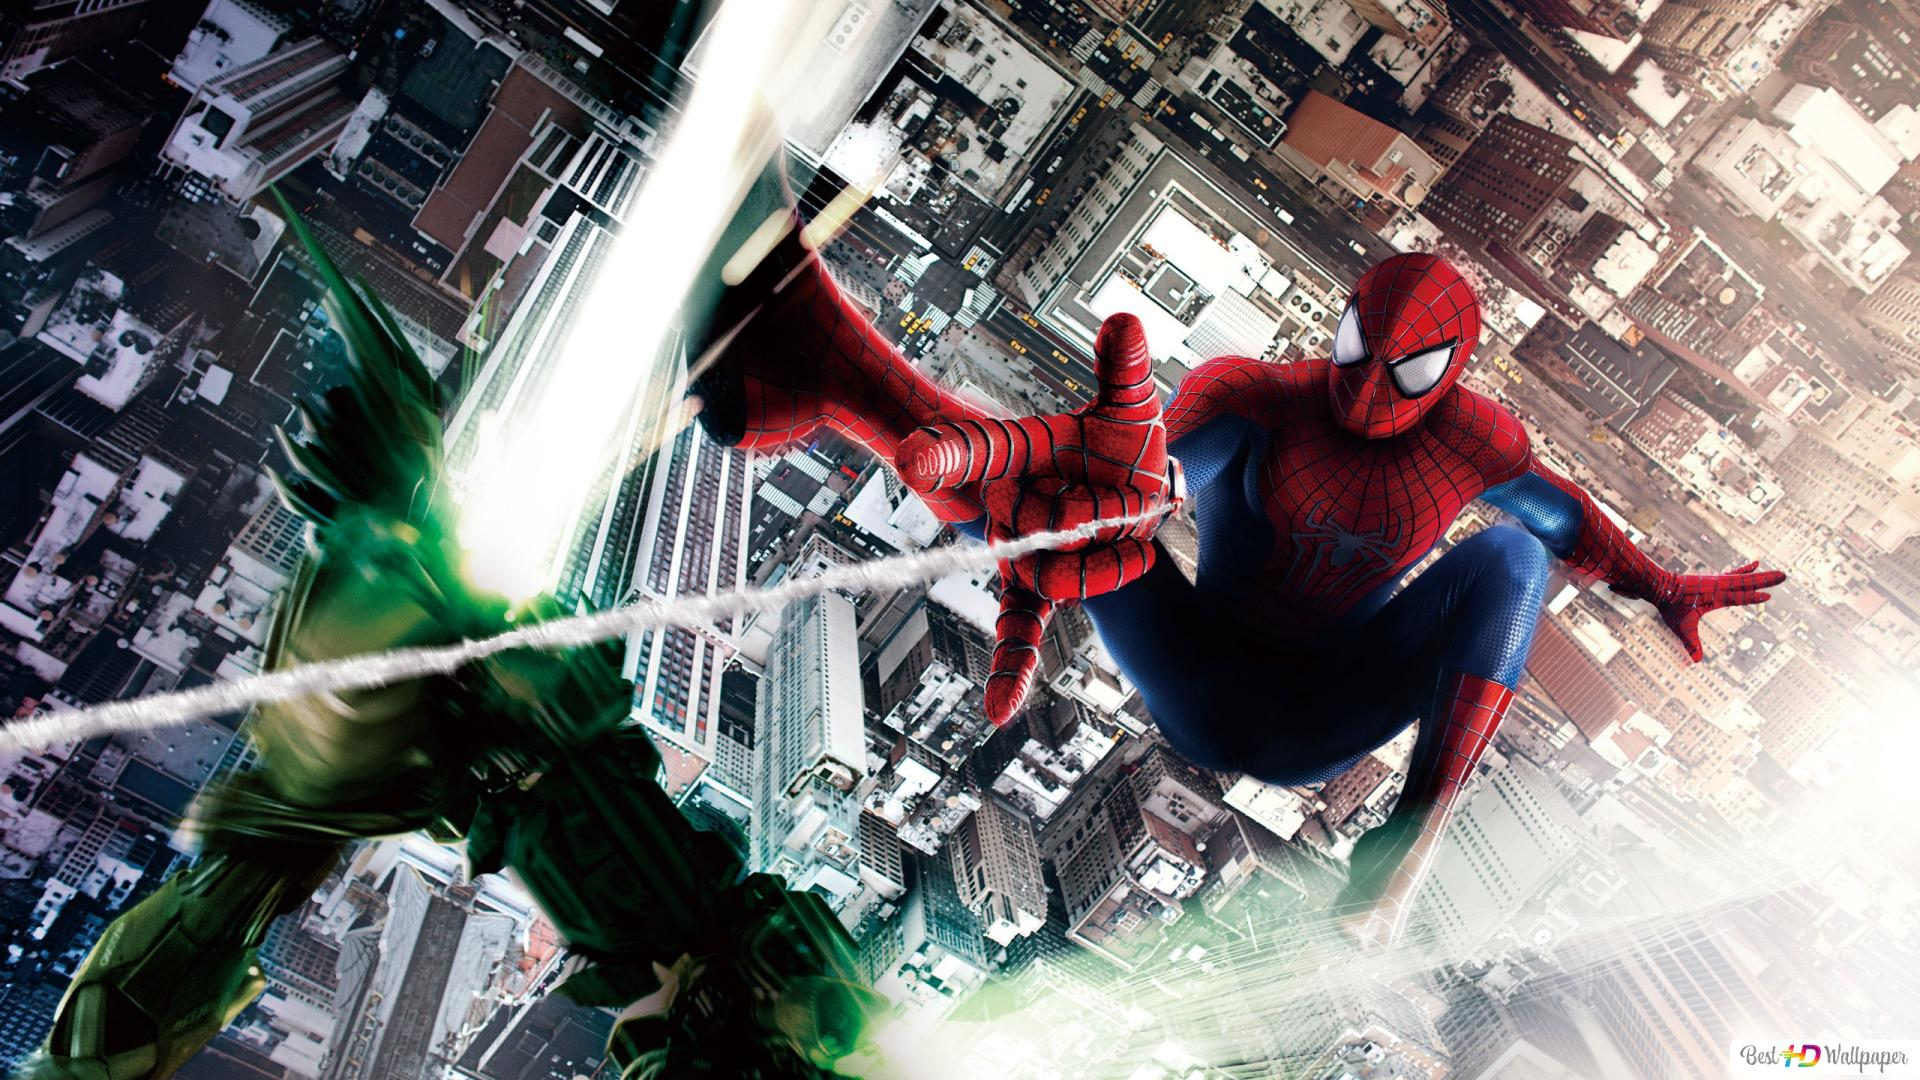 The Amazing Spiderman 2 Spiderman Hd Wallpaper Download